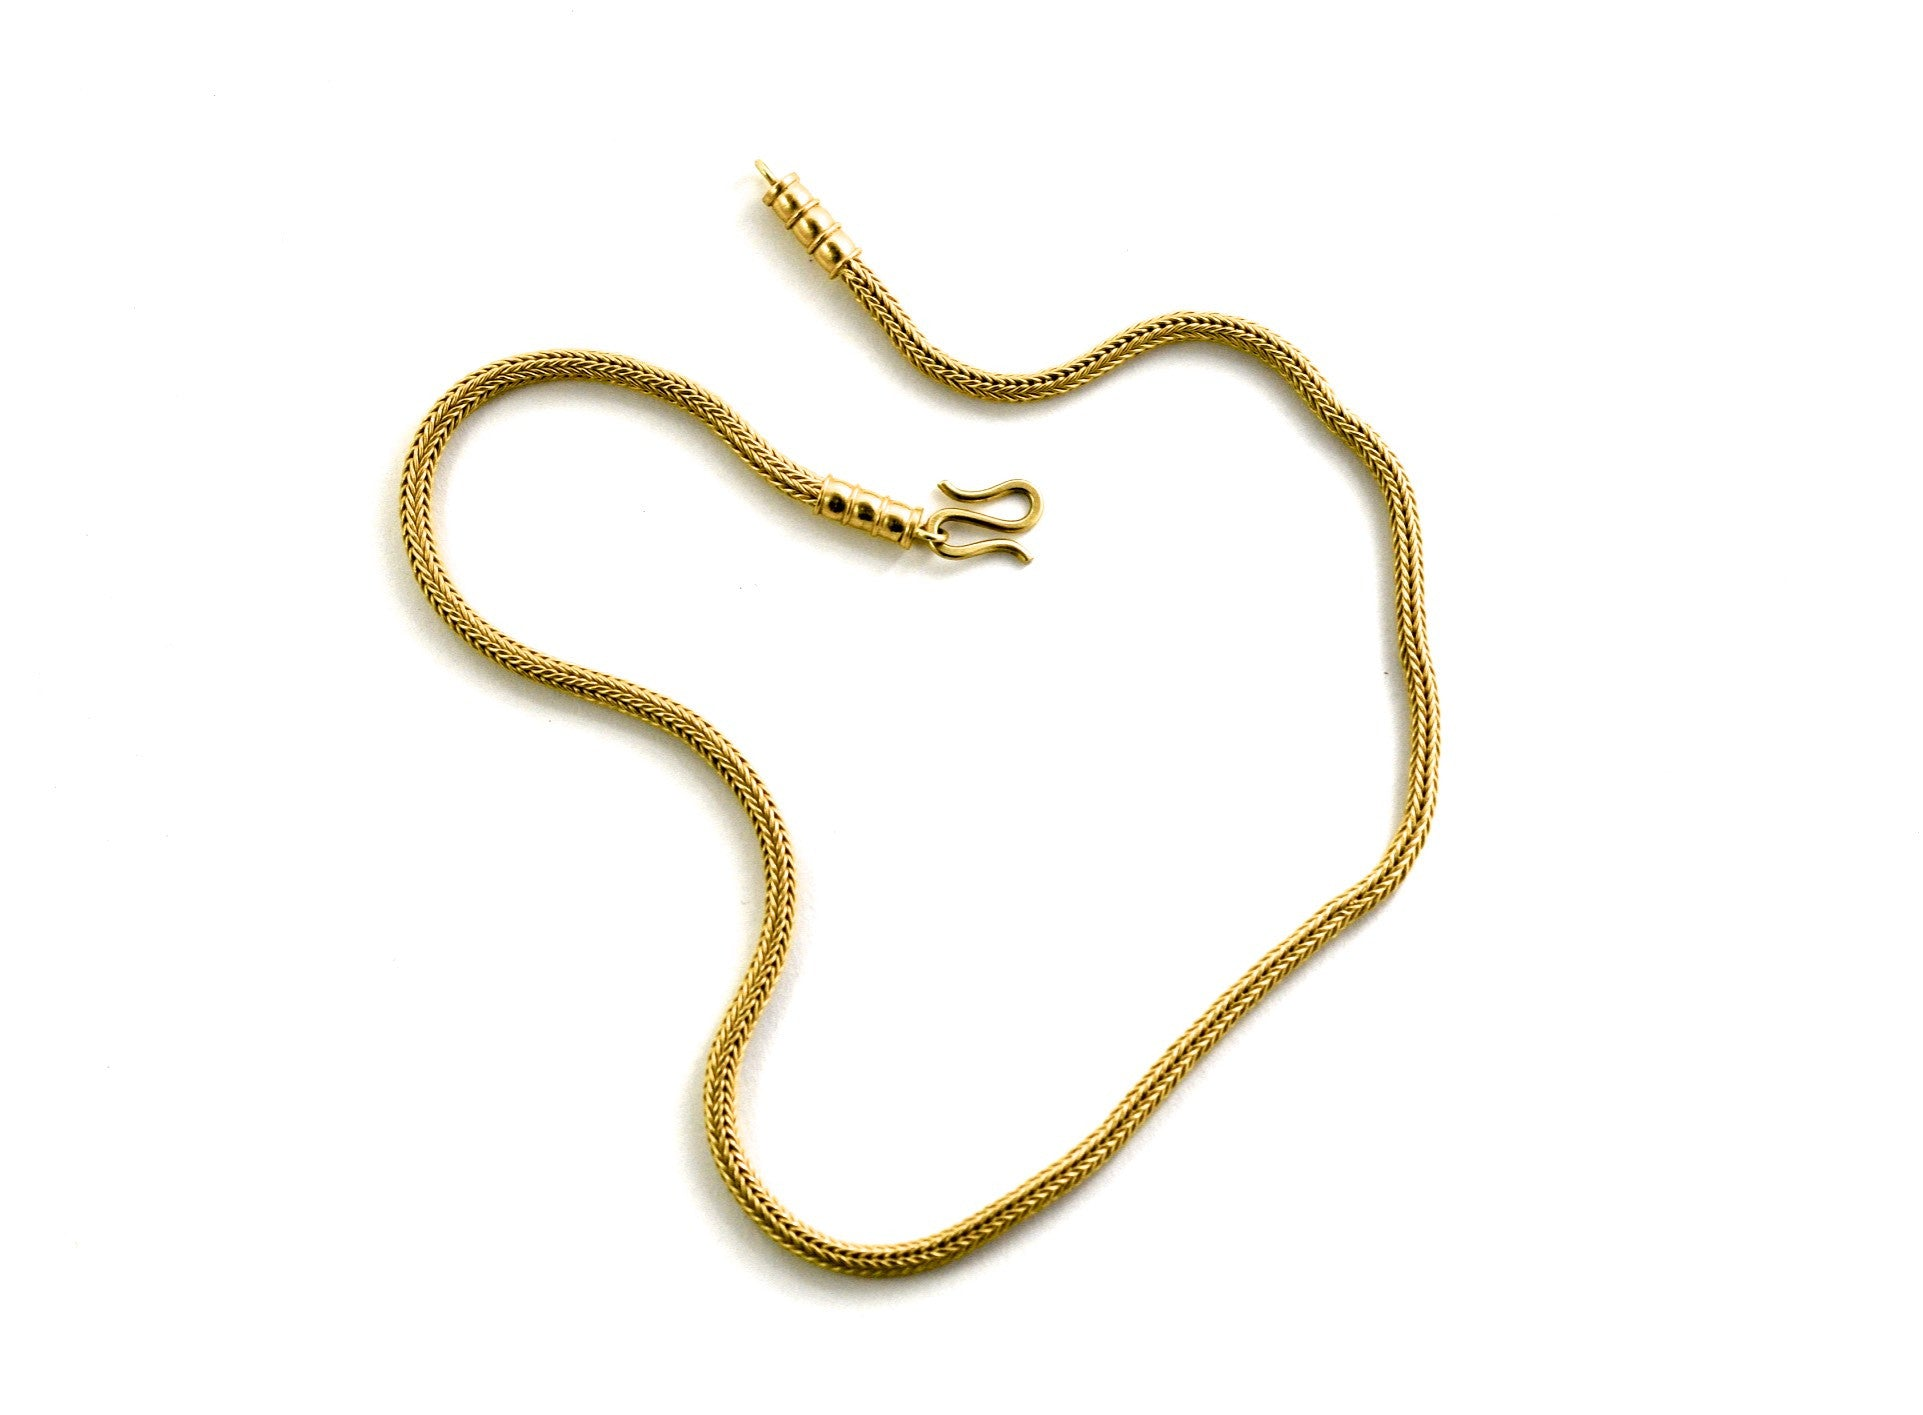 necklace  / gold 22k hand woven chain